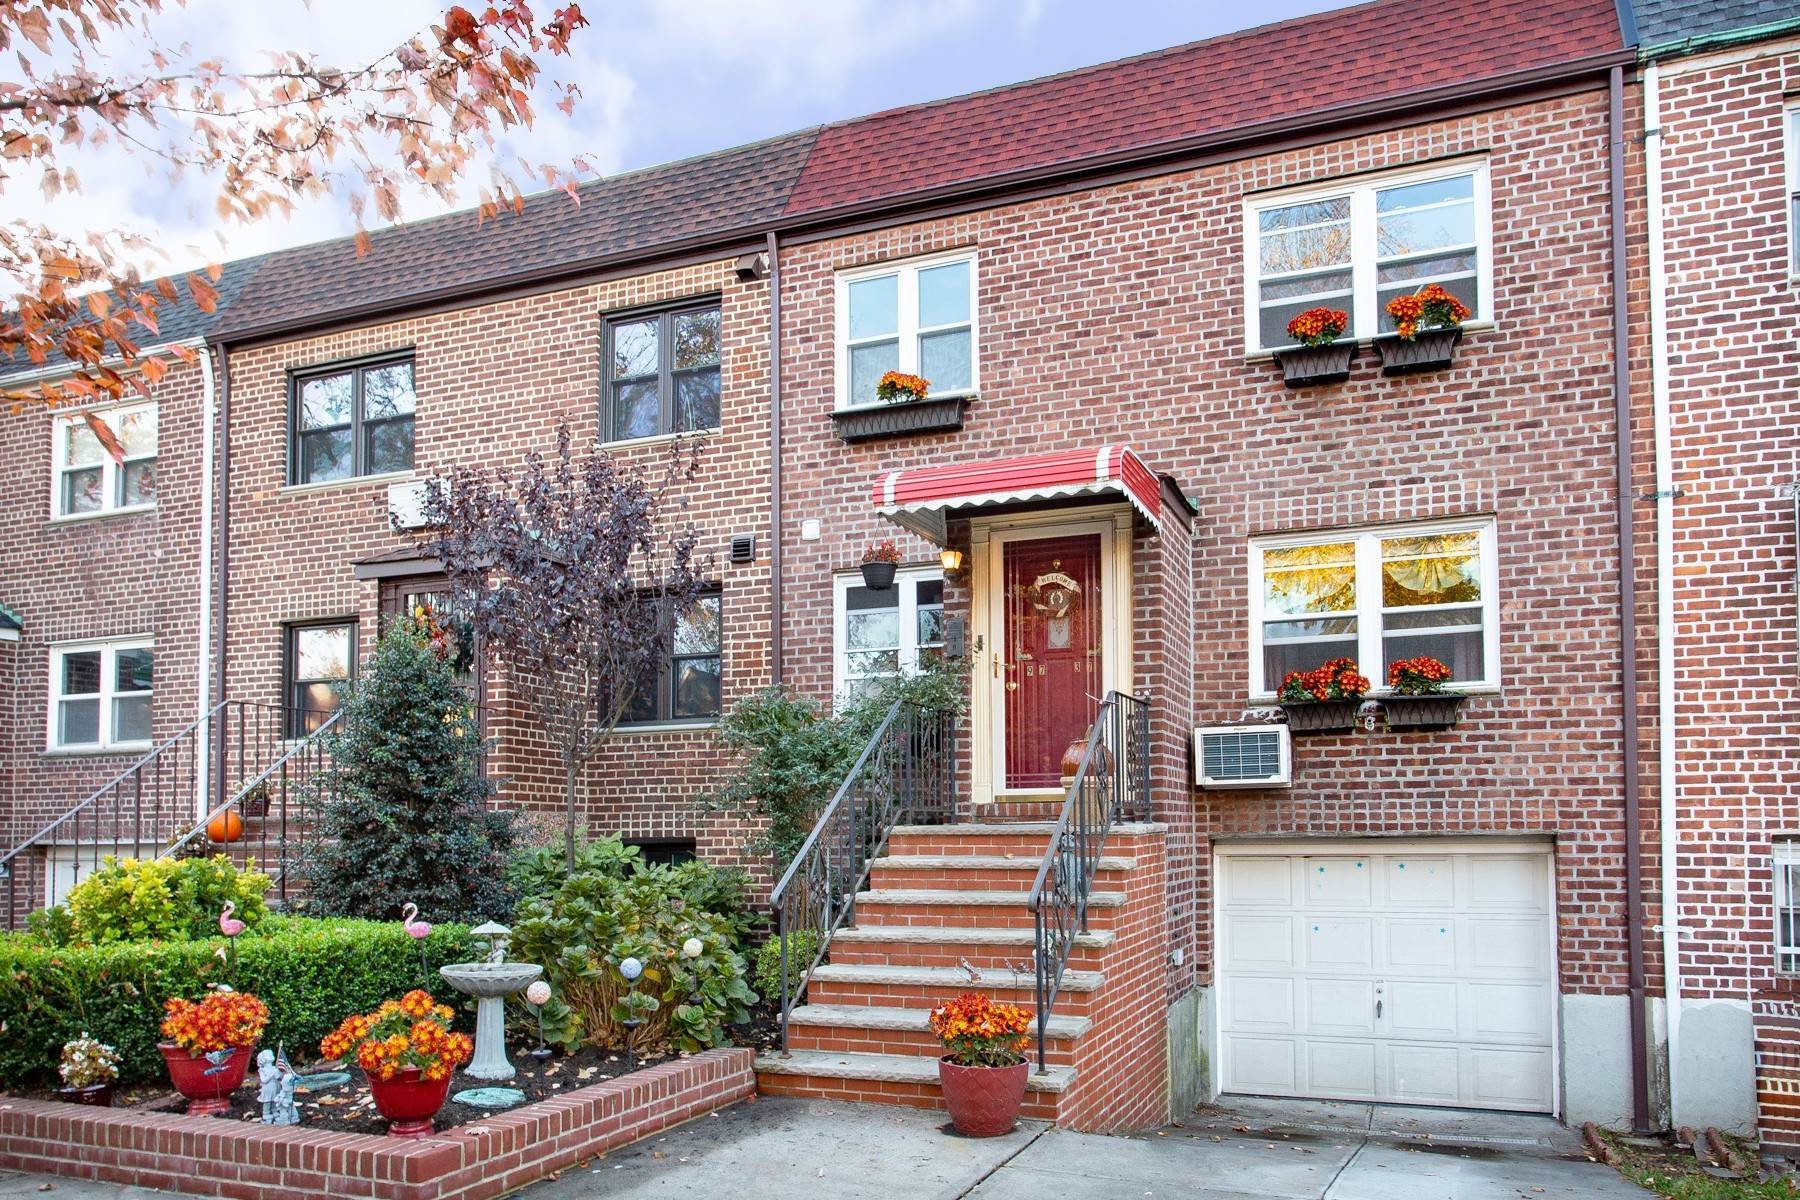 townhouses for Sale at 'PICTURE PERFECT PARKSIDE TWO FAMILY WITH GARDEN OASIS' 97-37 72nd Drive, Forest Hills, New York 11375 United States